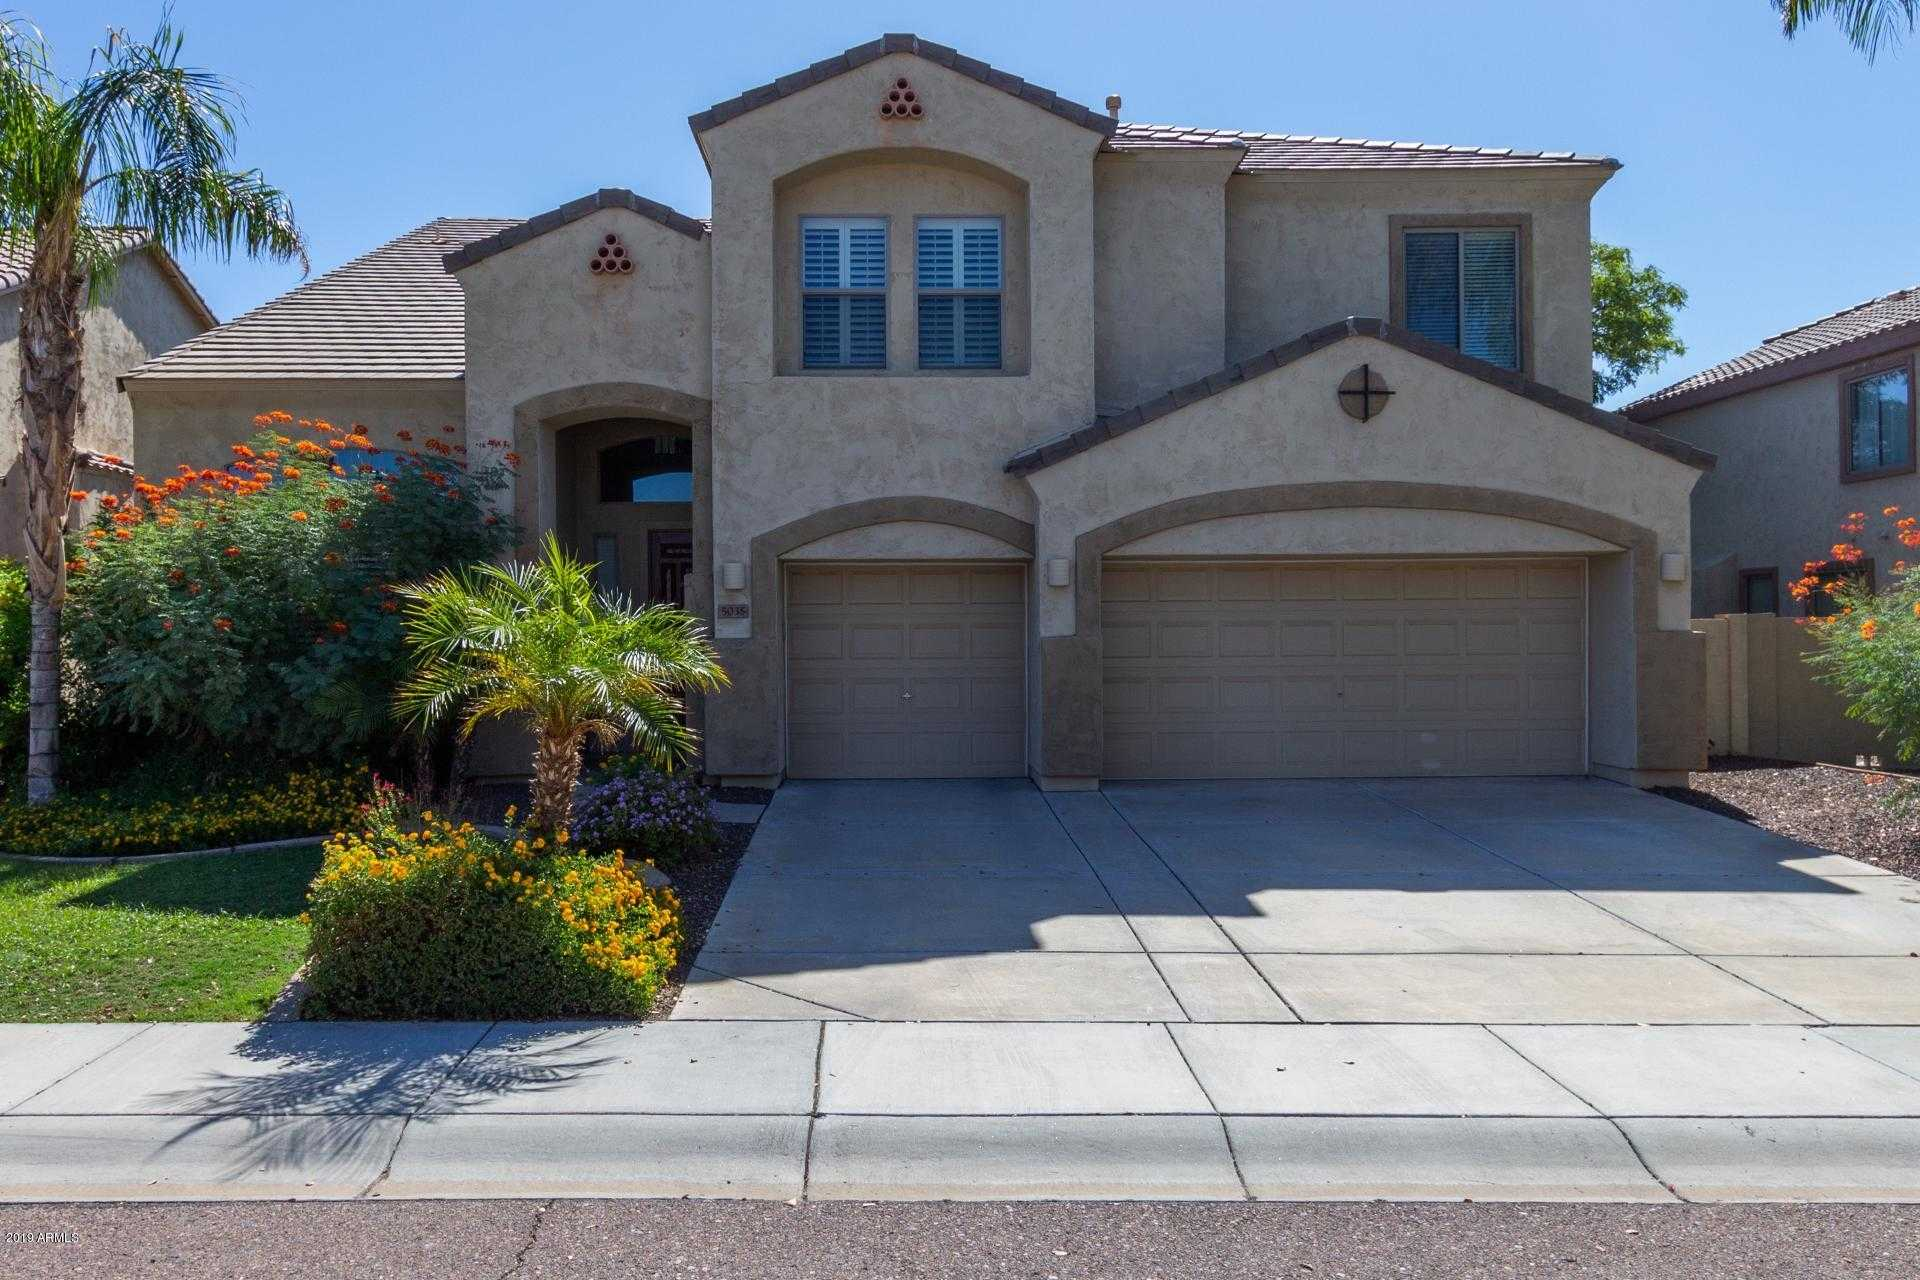 $472,500 - 4Br/3Ba - Home for Sale in Stetson Valley Parcels 7 8 9 10, Phoenix